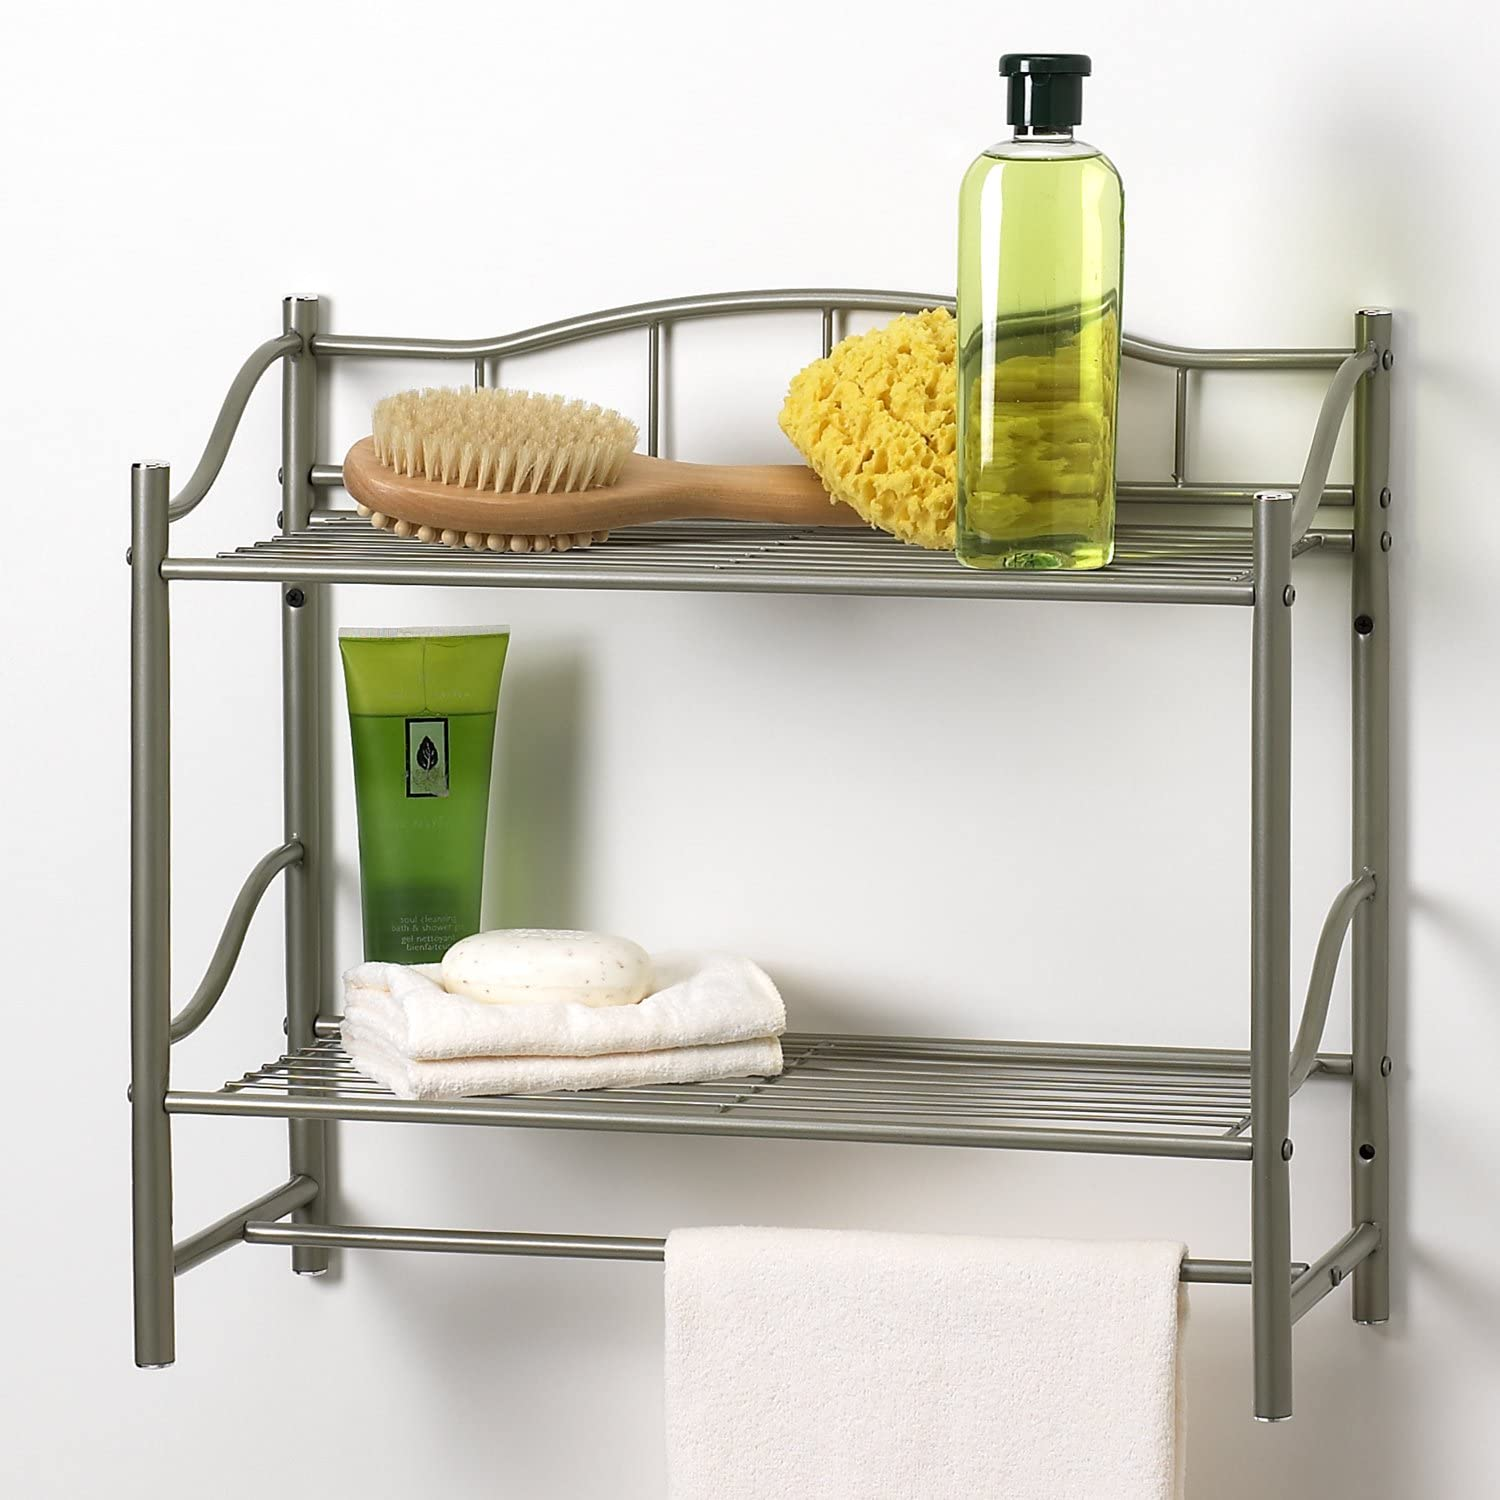 Creative Bath Products Complete Collection 2 Shelf Wall Organizer with Towel Bar, Pearl Nickel finish: Home & Kitchen